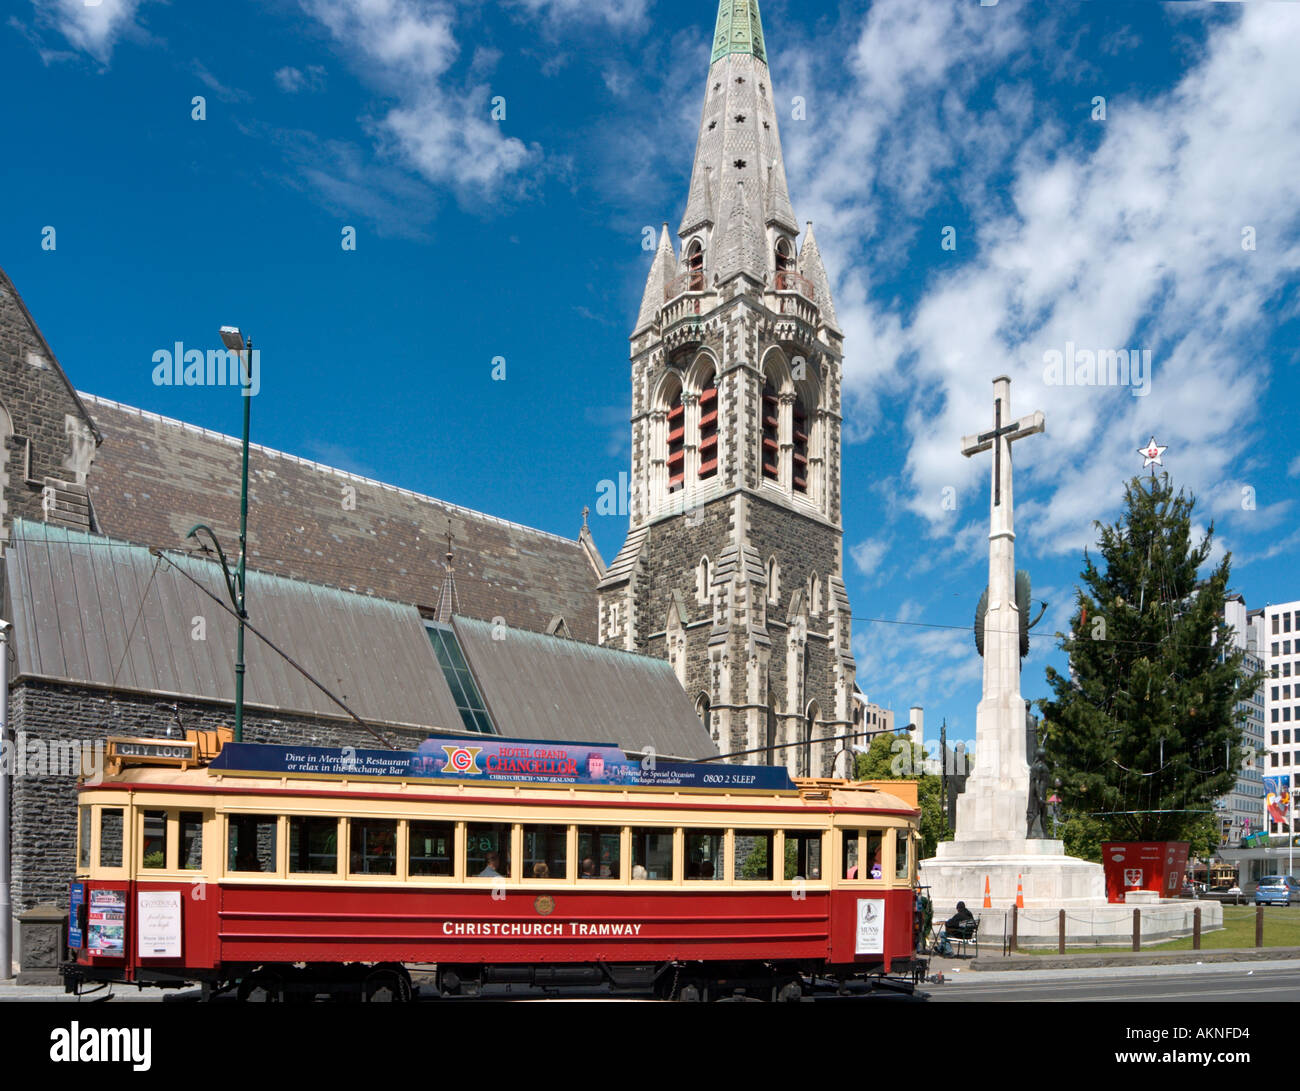 Traditional tram in front of Christchurch Cathedral, Christchurch, South Island, New Zealand - Stock Image